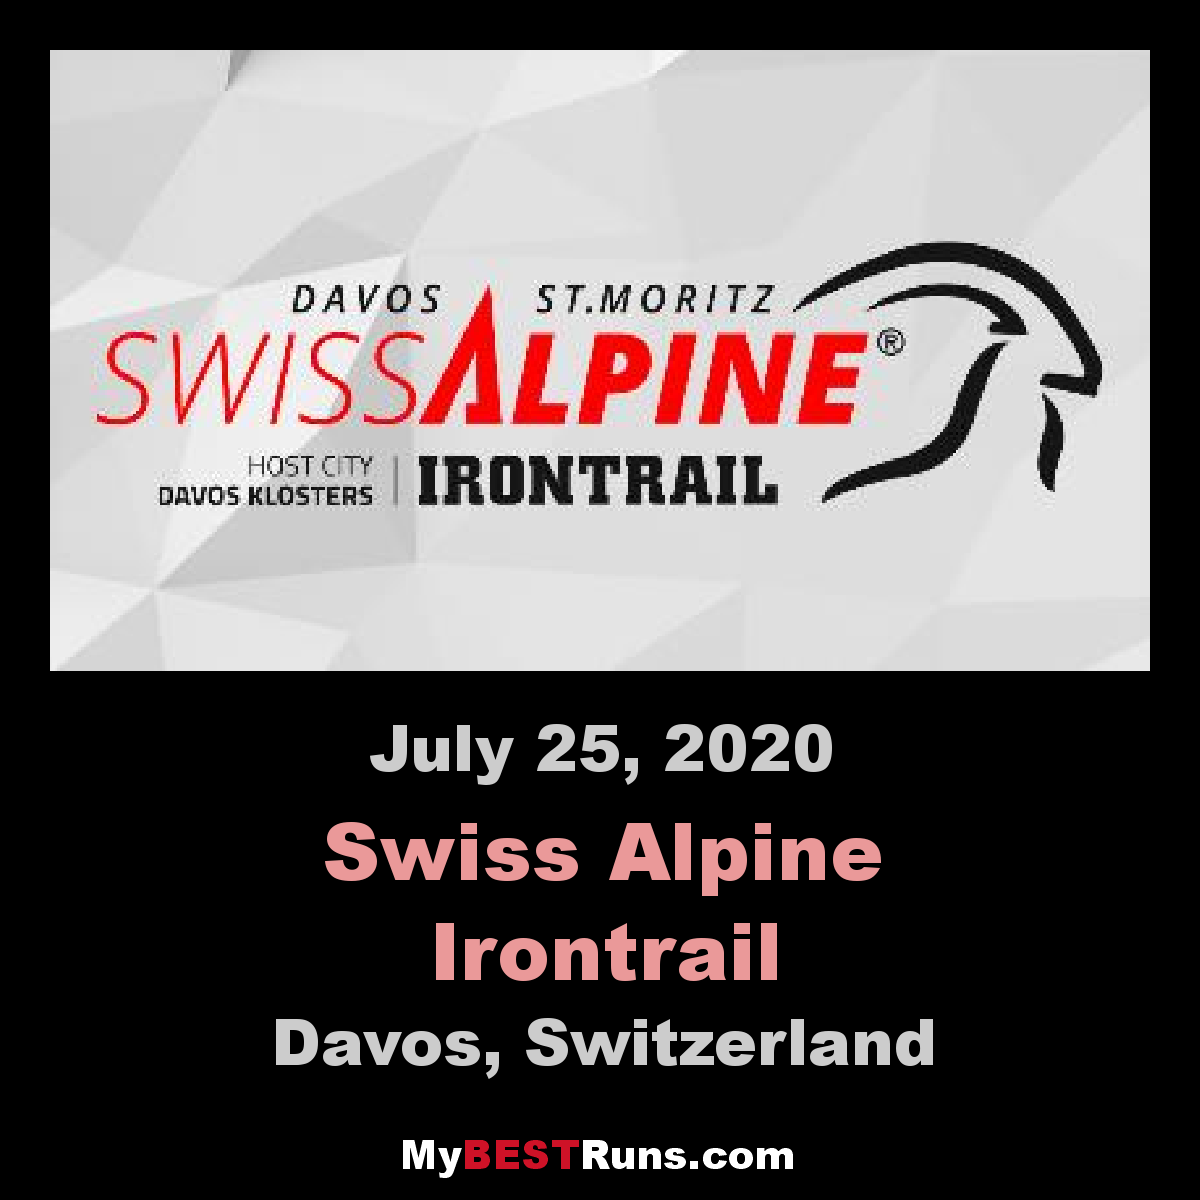 Swiss Alpine Irontrail